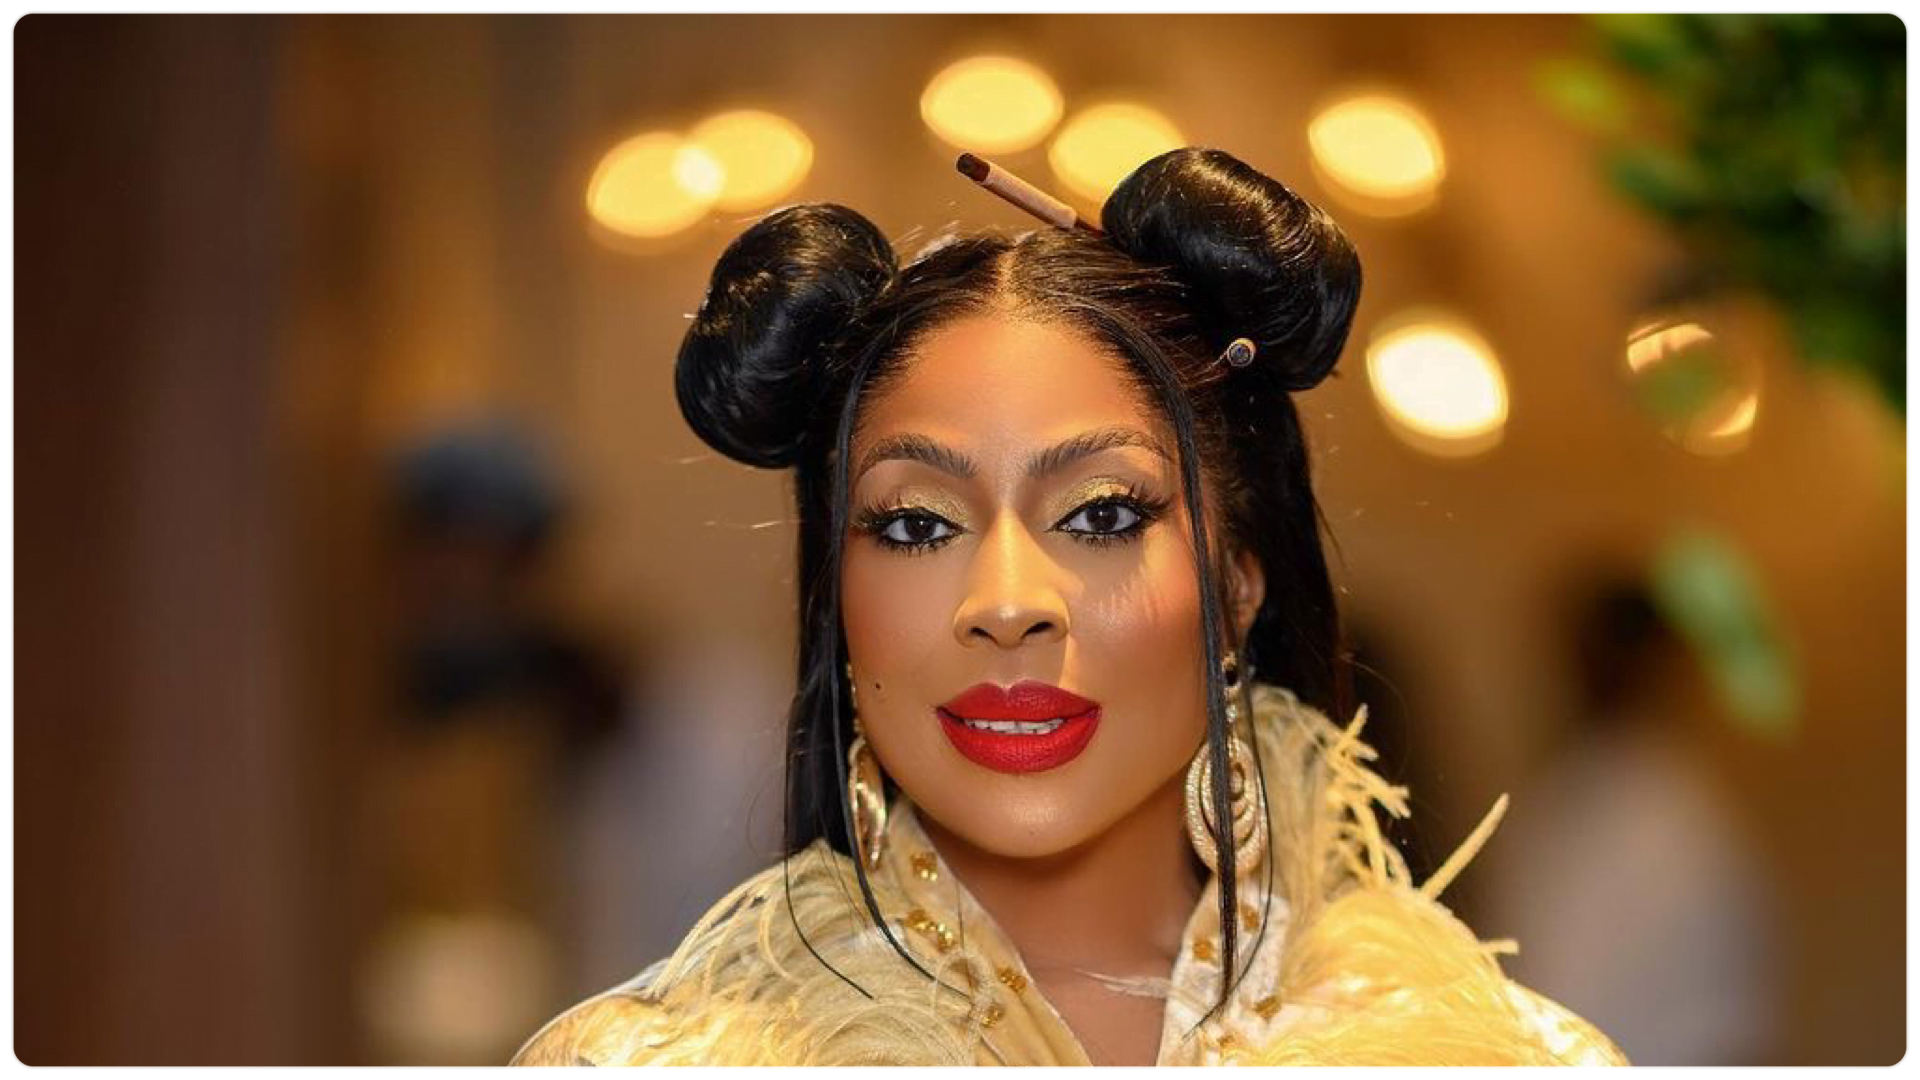 Our Favorite Oriental Looks From Mo Abudu's 57th Birthday Celebration